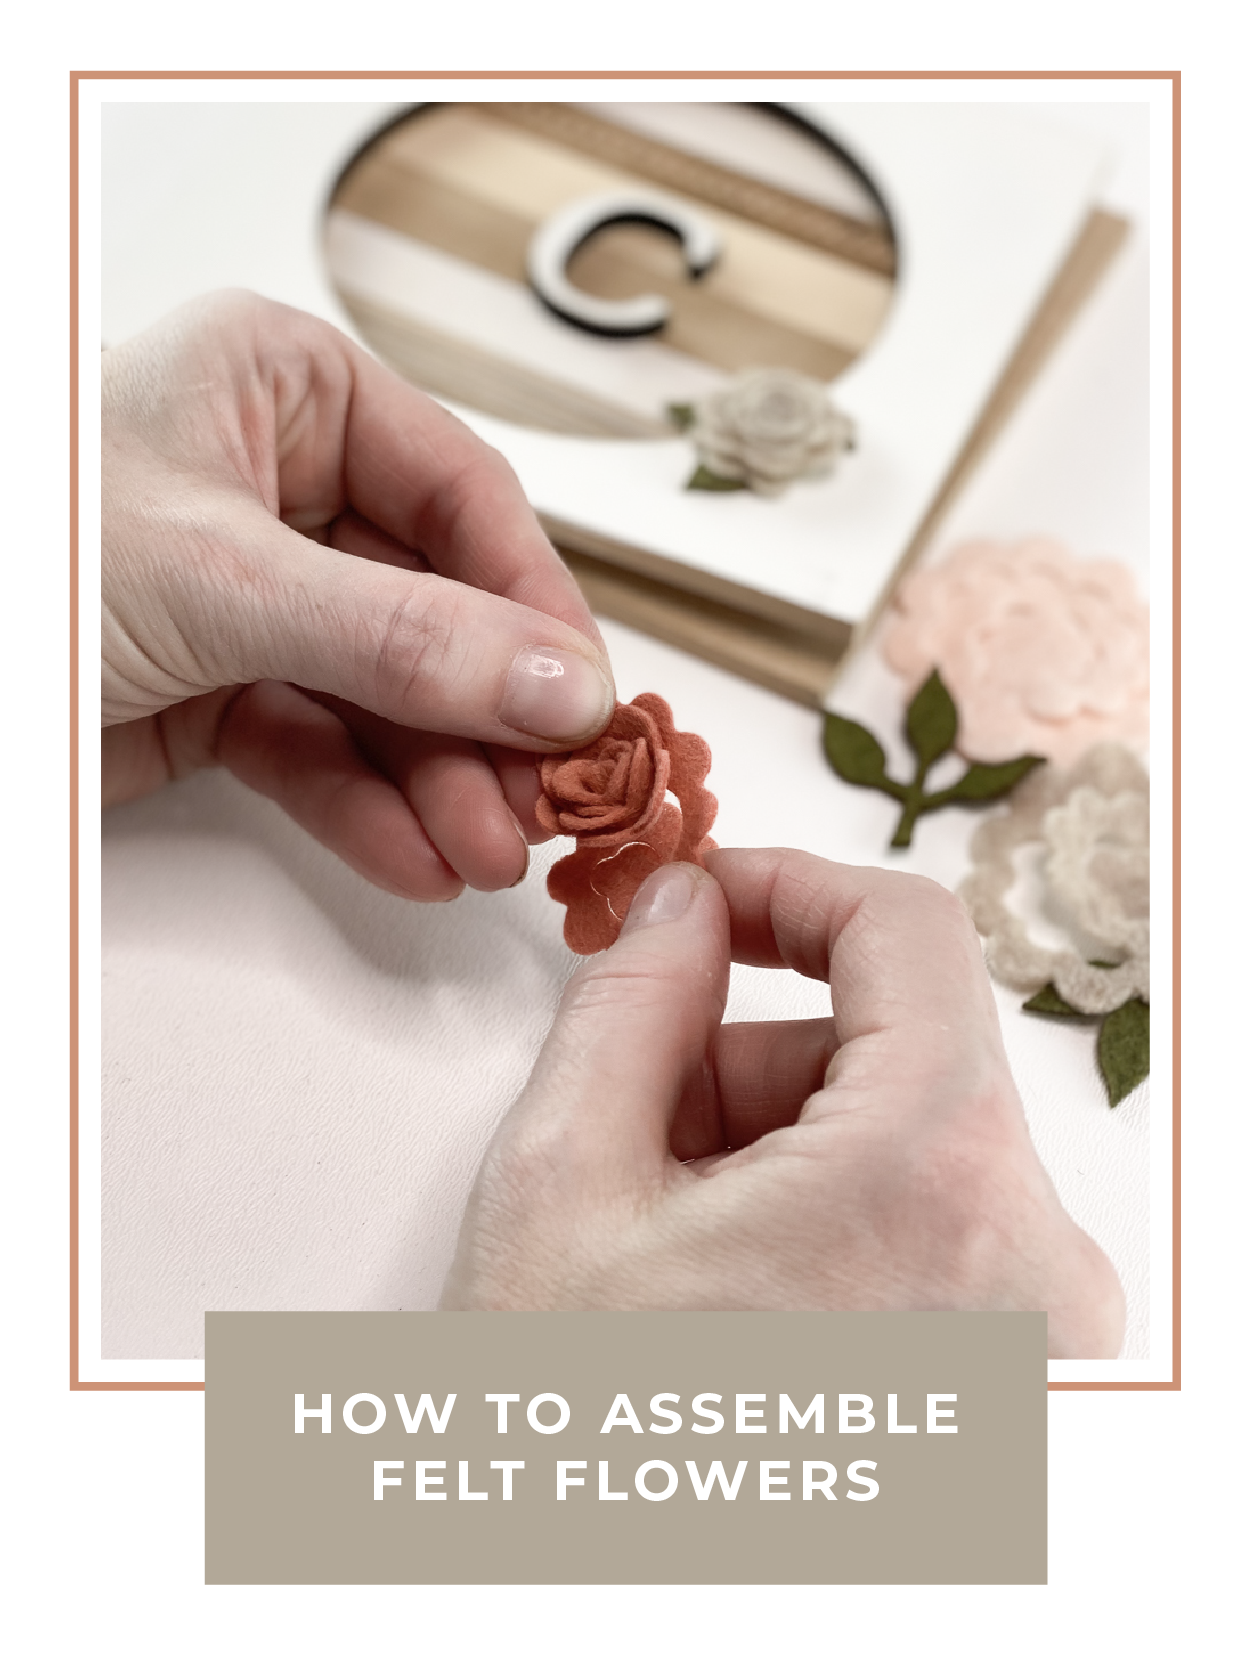 How to assemble felt flowers